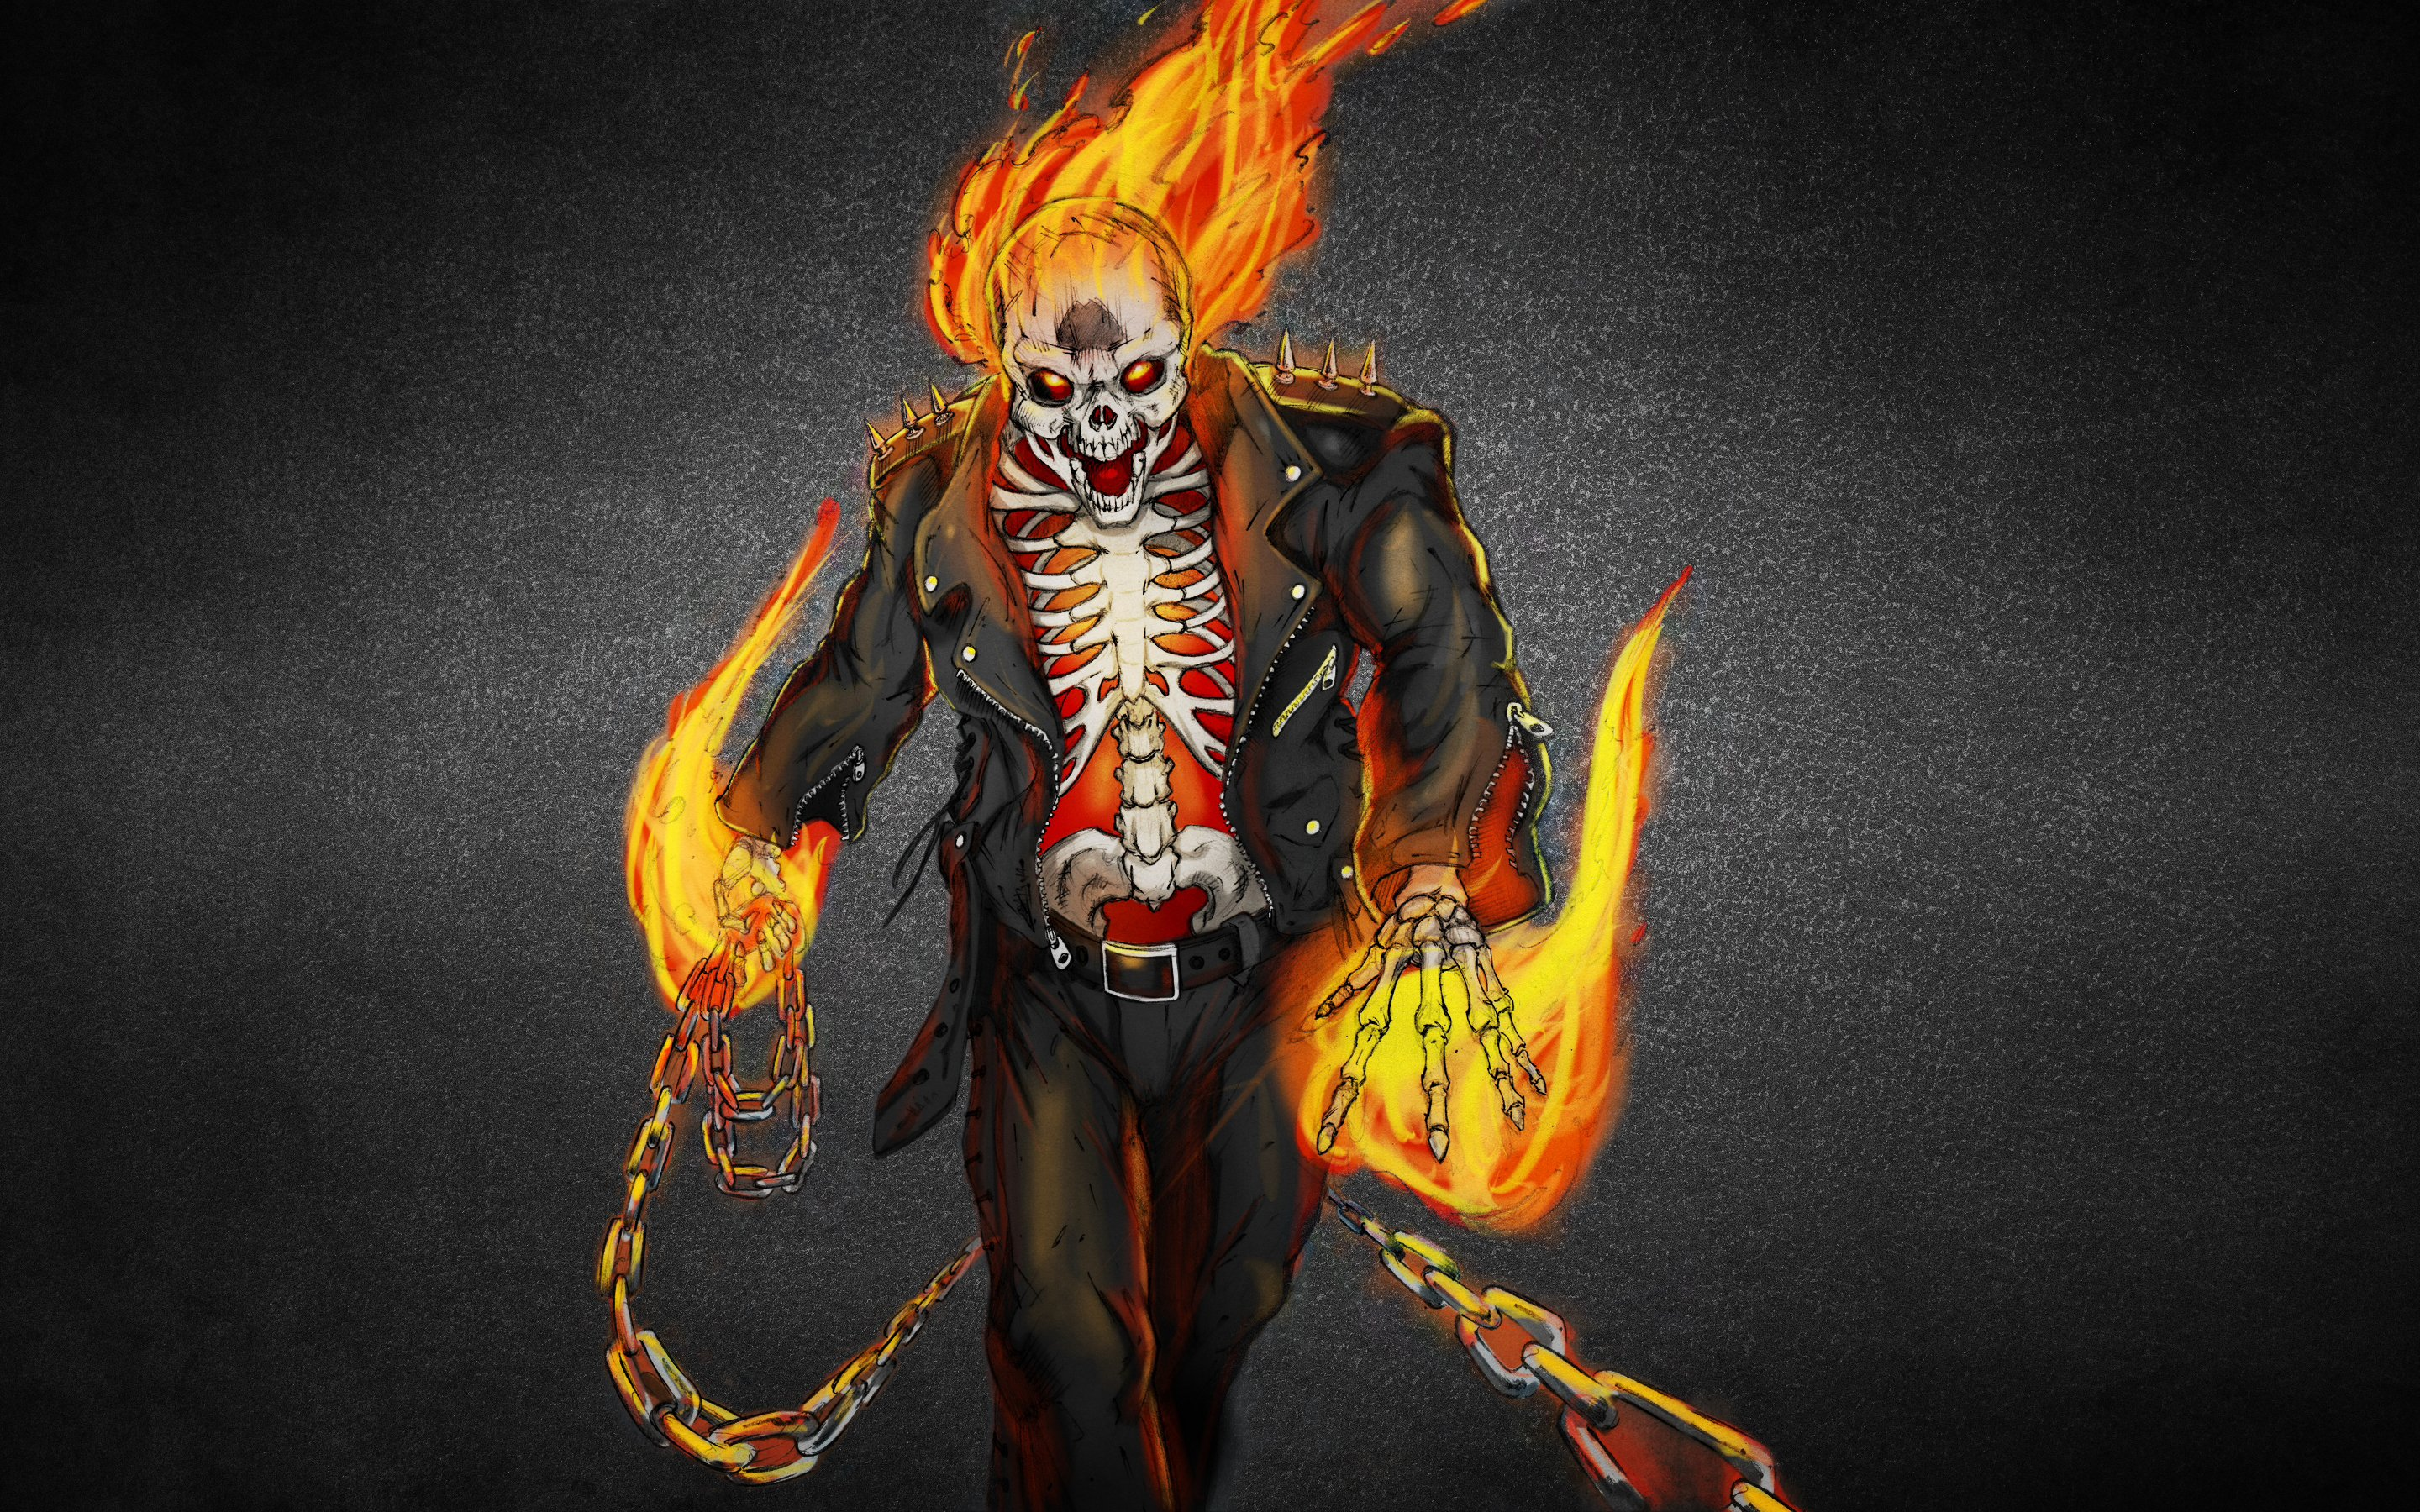 Wallpapers Skulls With Flames Wallpapersafari